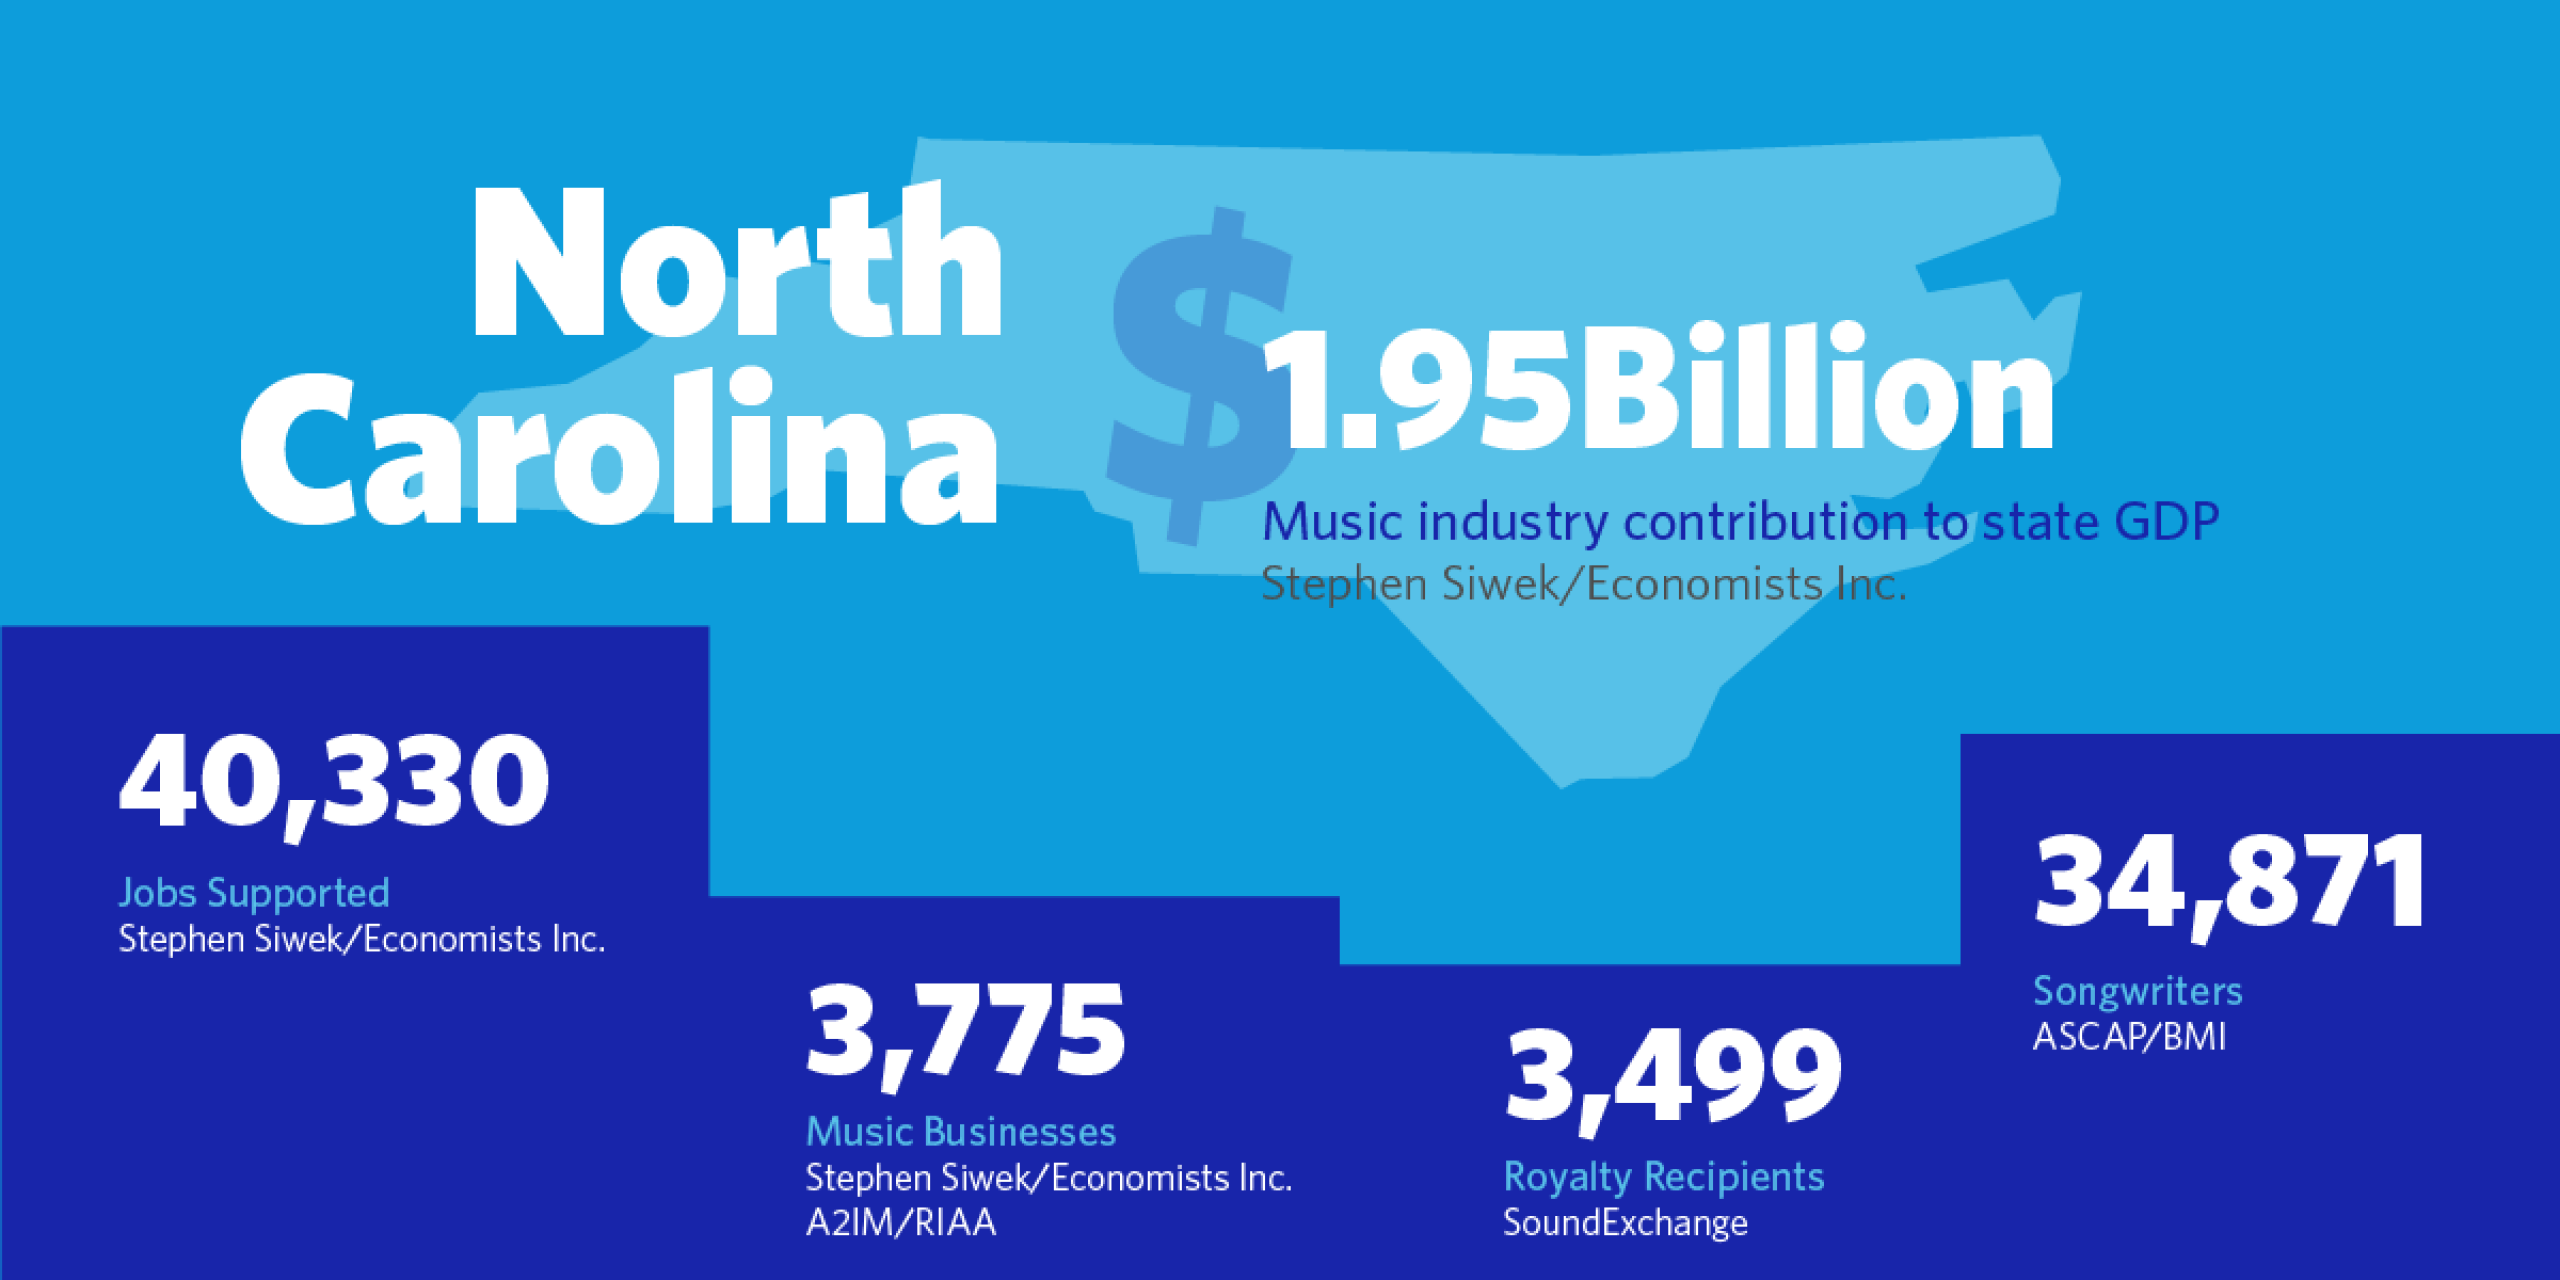 North Carolina: $1.95B Music industry contribution to state GDP  Stephen Siwek/Economists Inc. 40,330 Jobs Supported  Stephen Siwek/Economists Inc. 3,775 Music Businesses  Stephen Siwek/Economists Inc. A2IM/RIAA 3,499 Royalty Recipients  SoundExchange 34,871 Songwriters  ASCAP/BMI